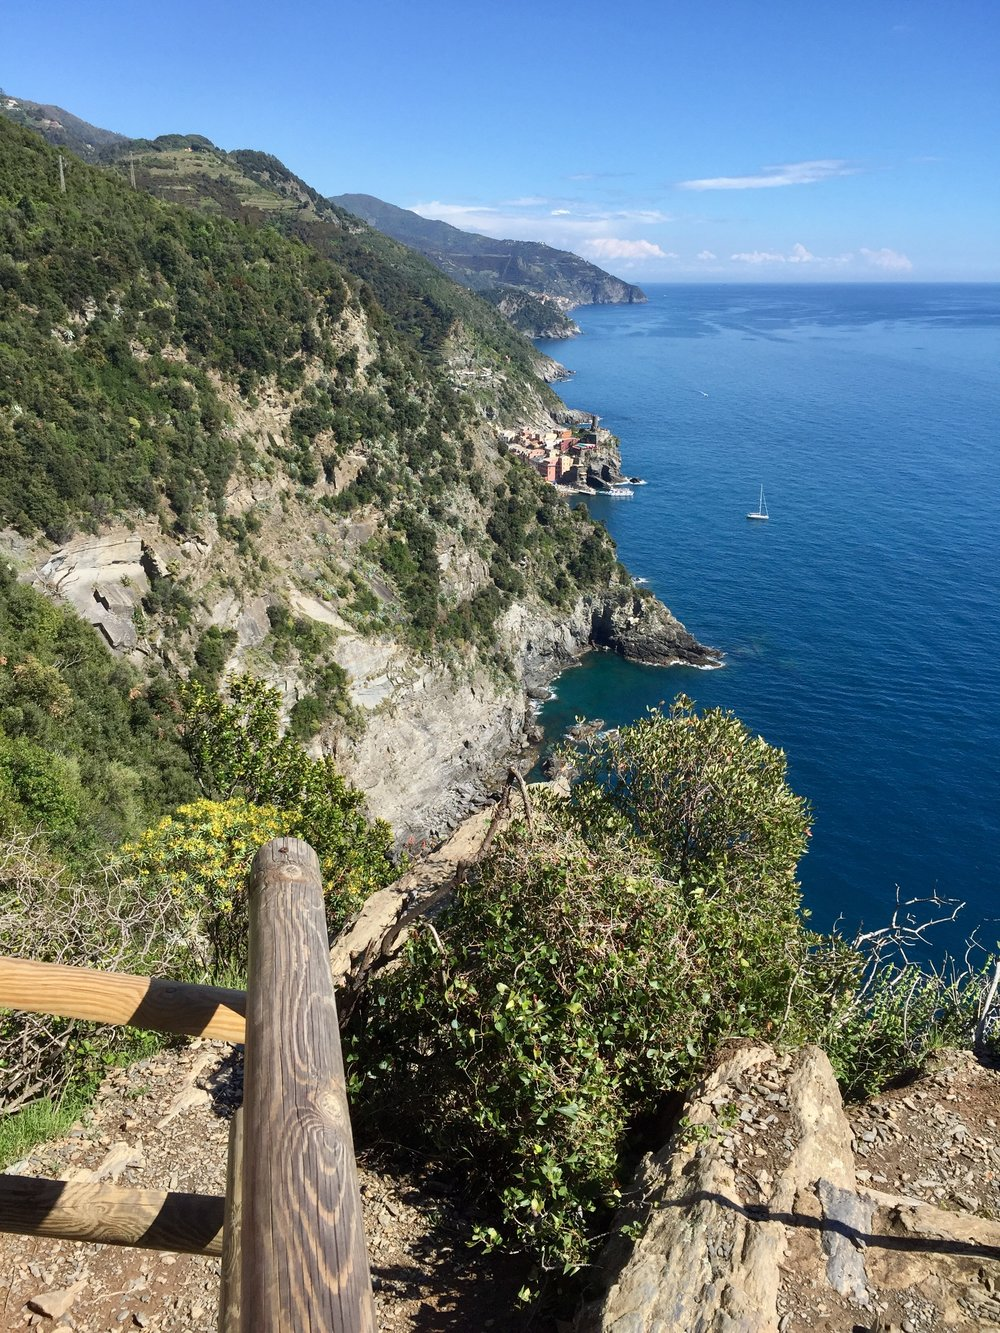 Copy of  About half of the group hiked at least one of the rigorous Cinque Terre trails and were rewarded with jaw-dropping views like this.